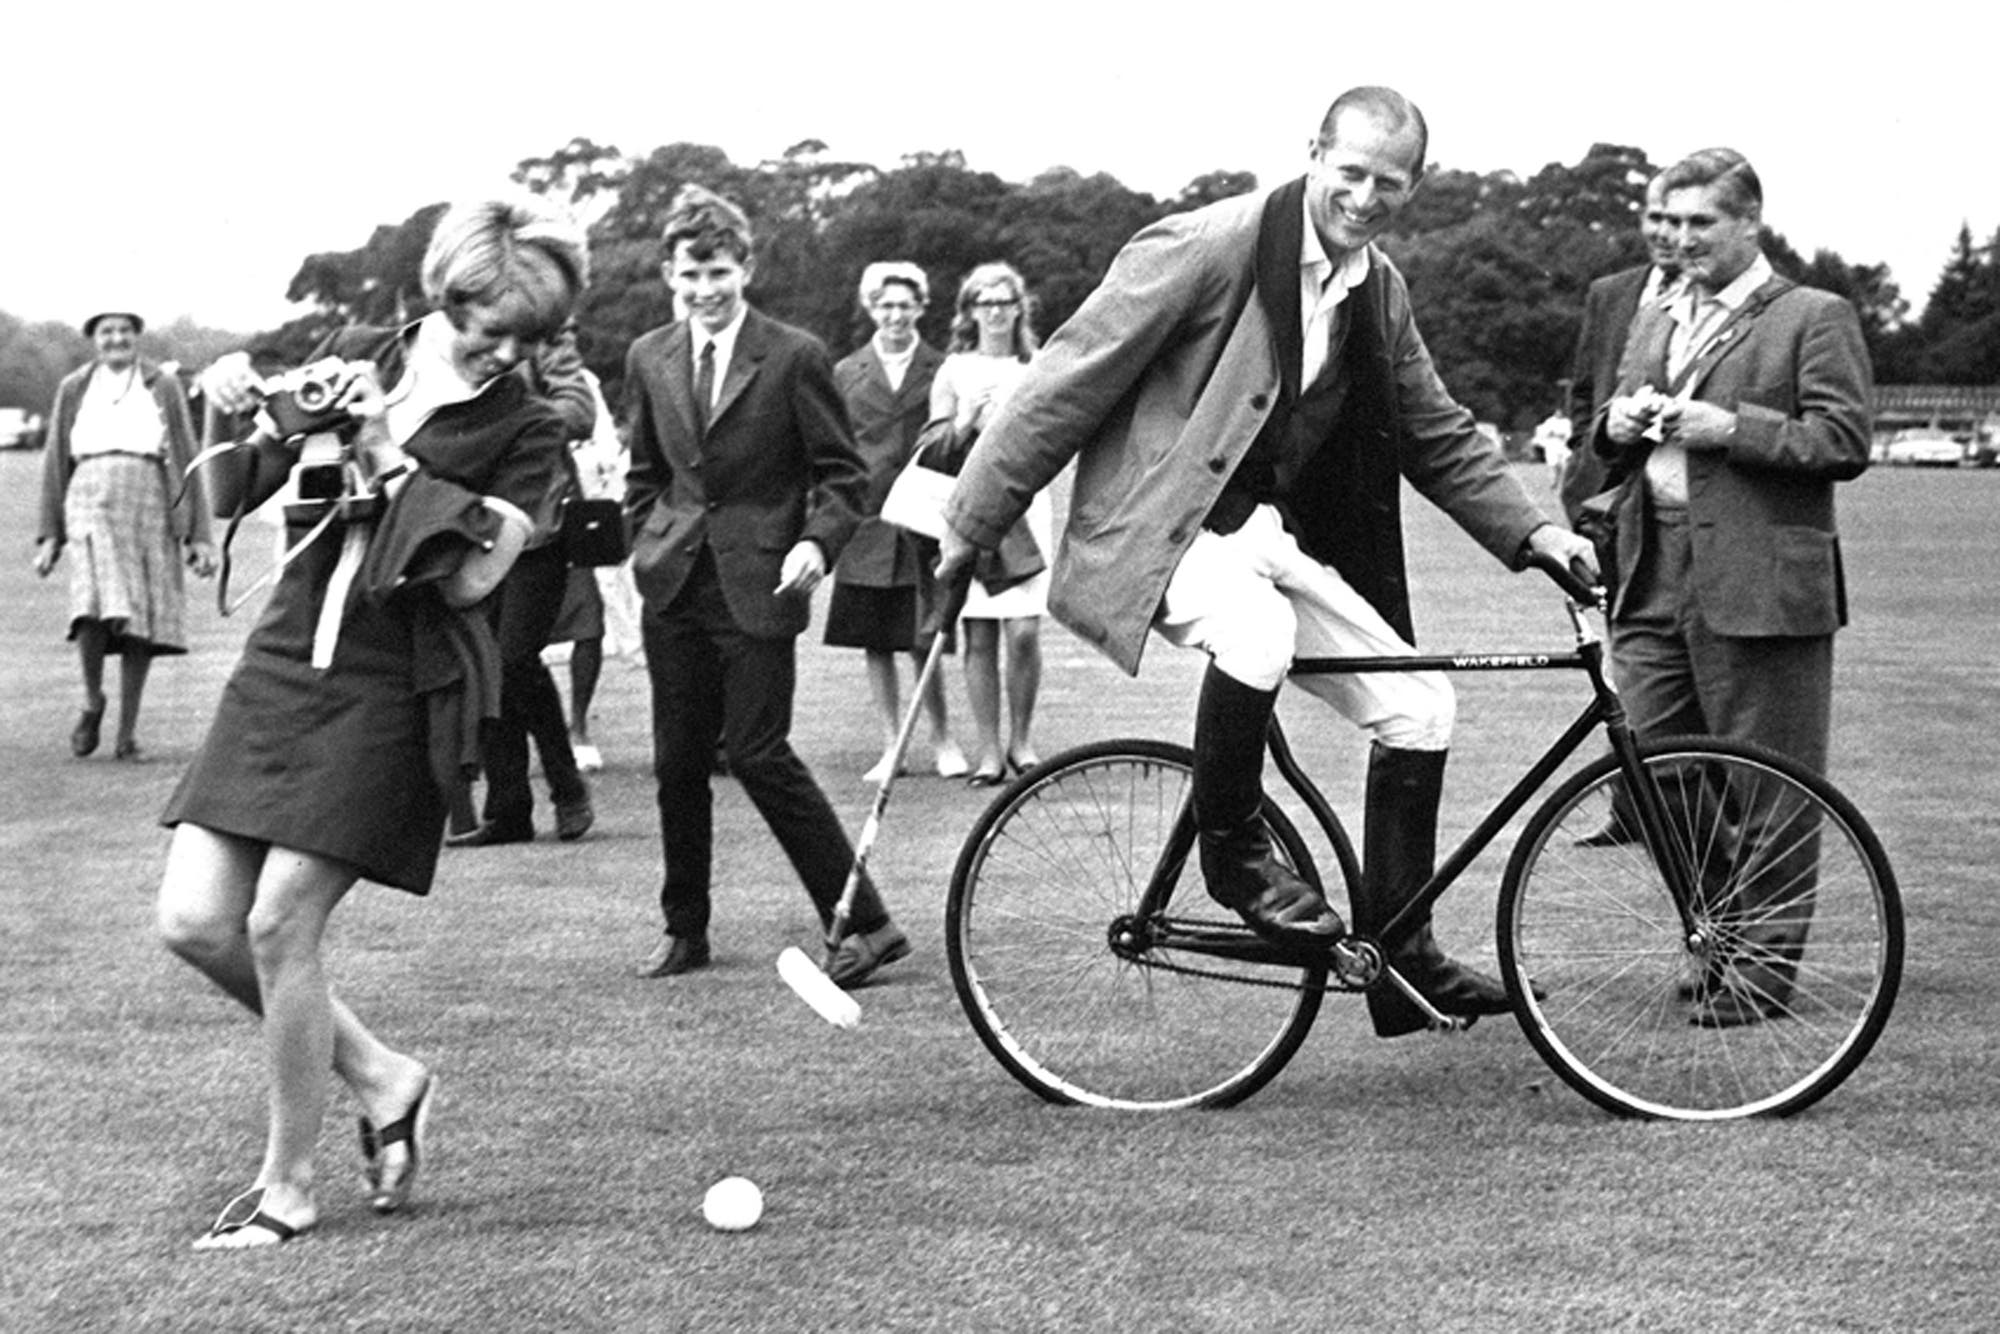 Prince Philip in 1964 after one of his beloved polo games.  Image credit: Getty Images